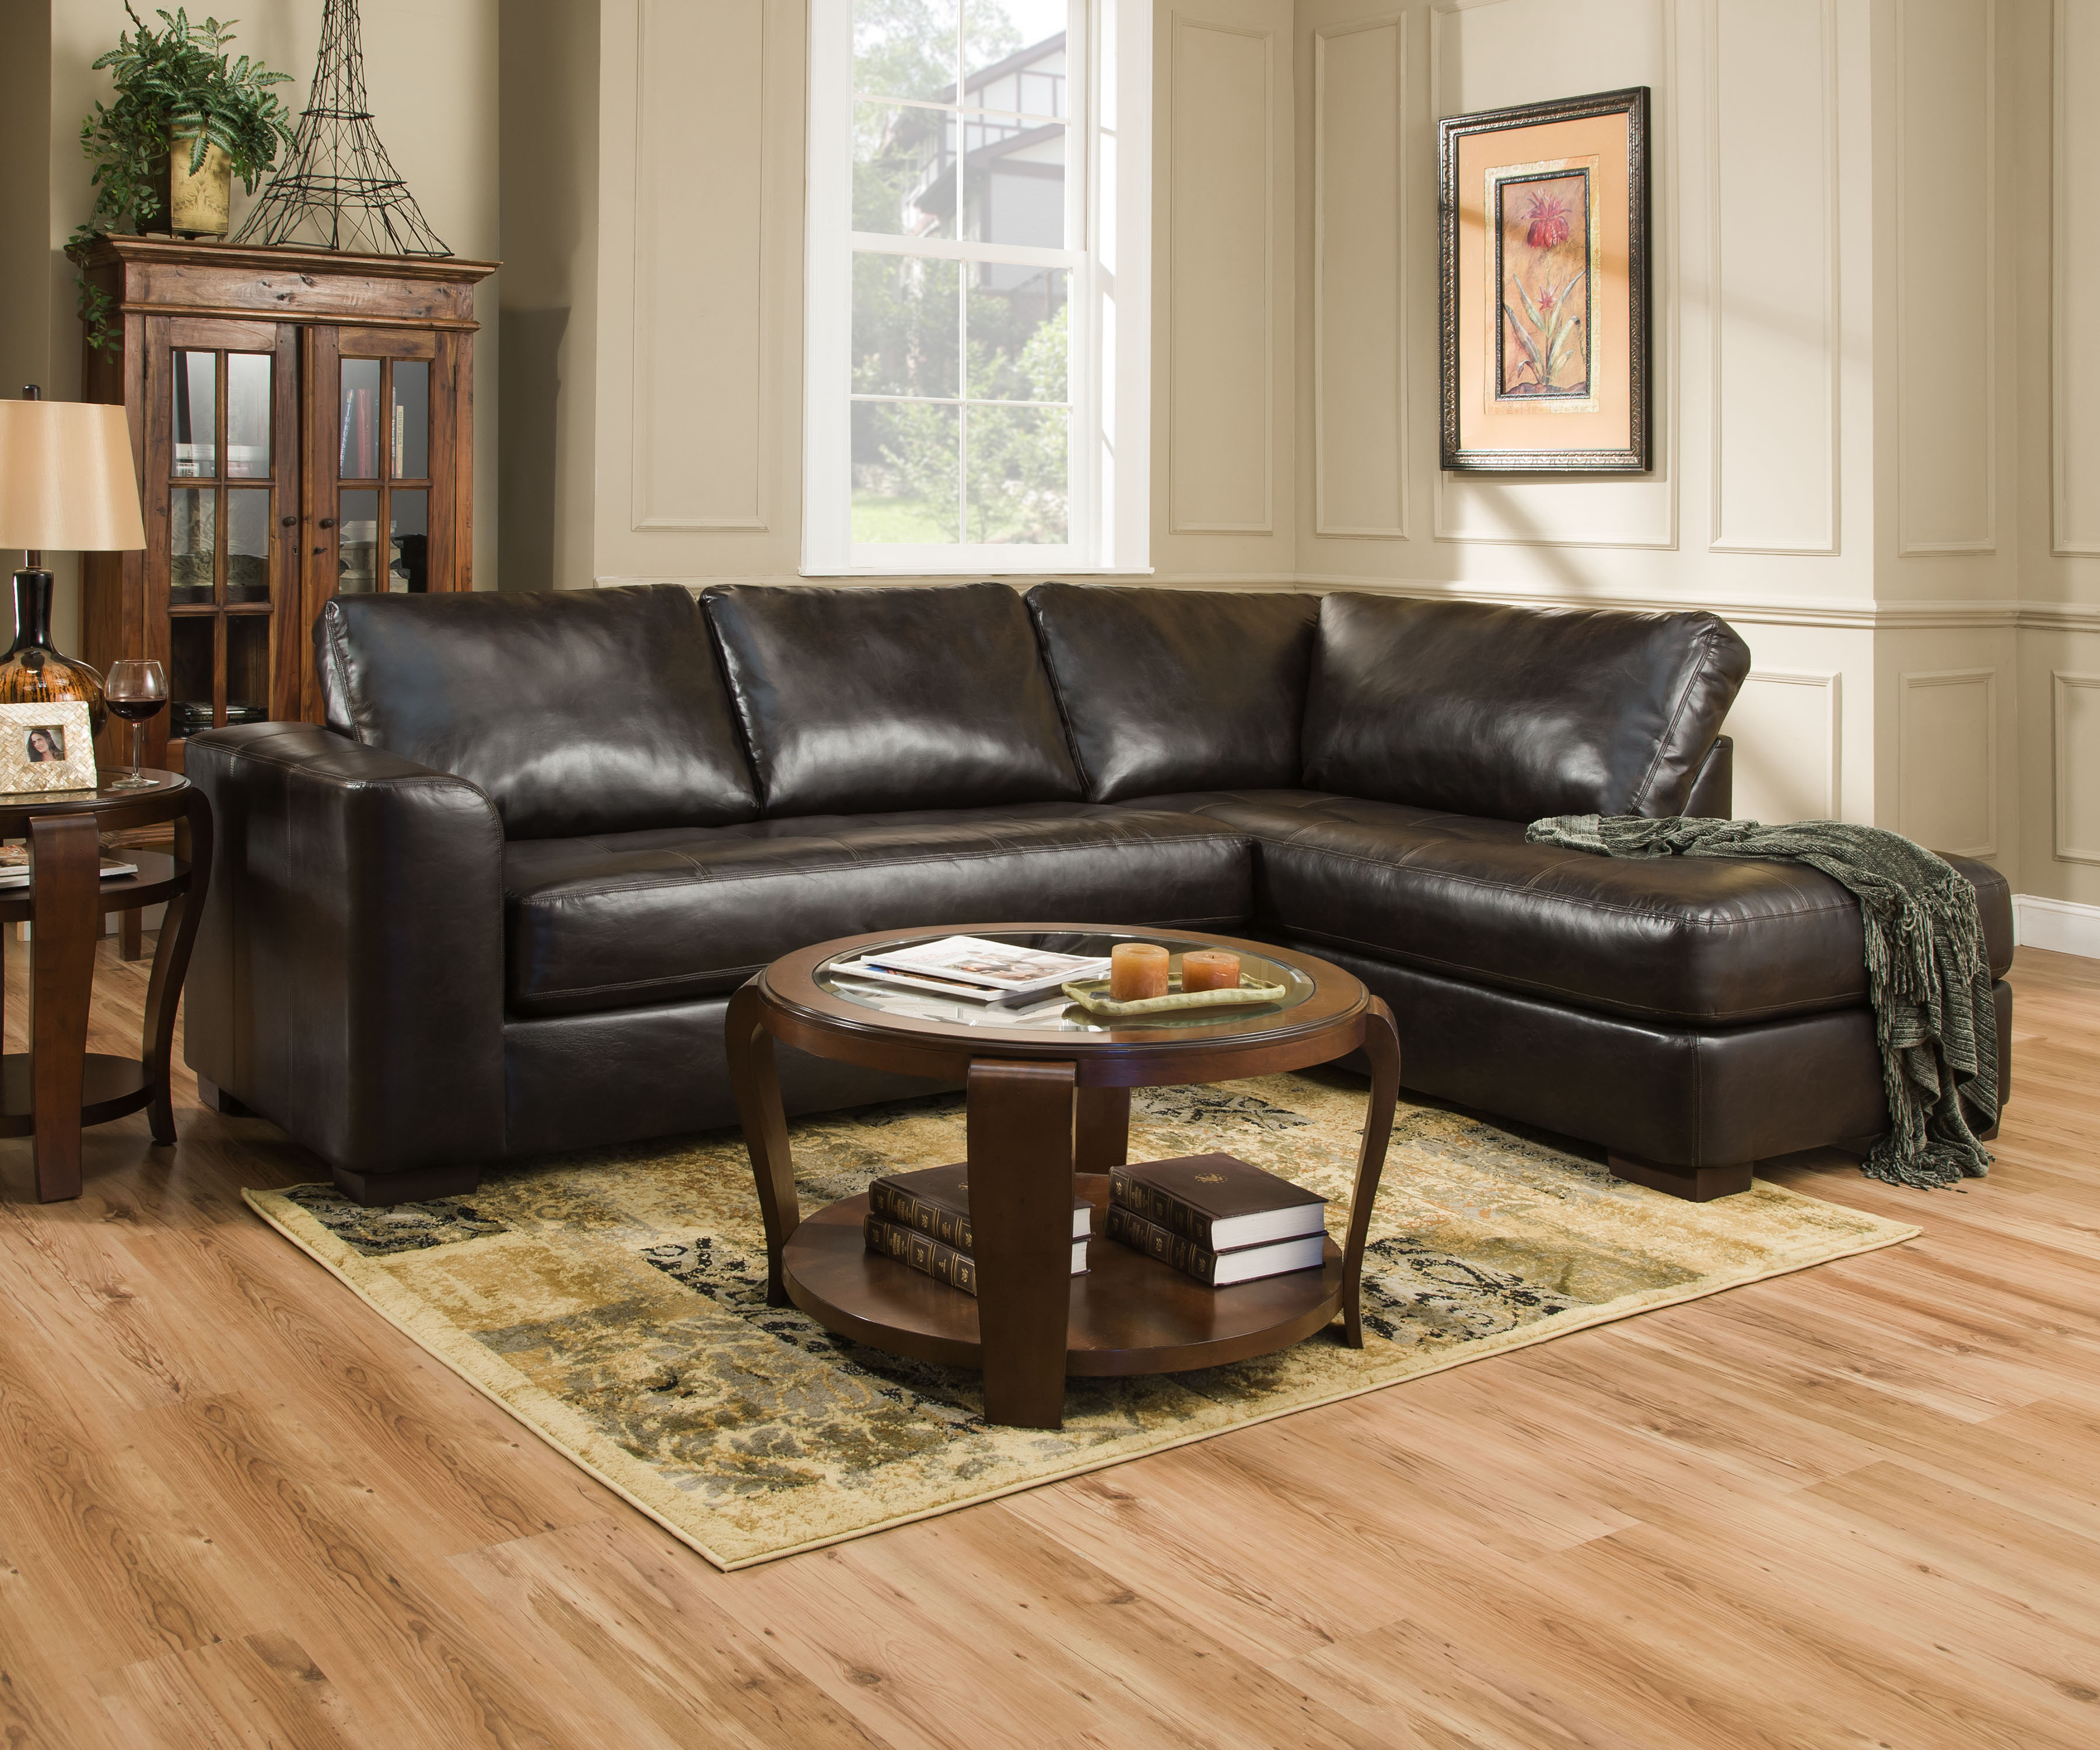 Simmons lucky espresso sectional with chaise sectional for Simmons sectional sofa with chaise